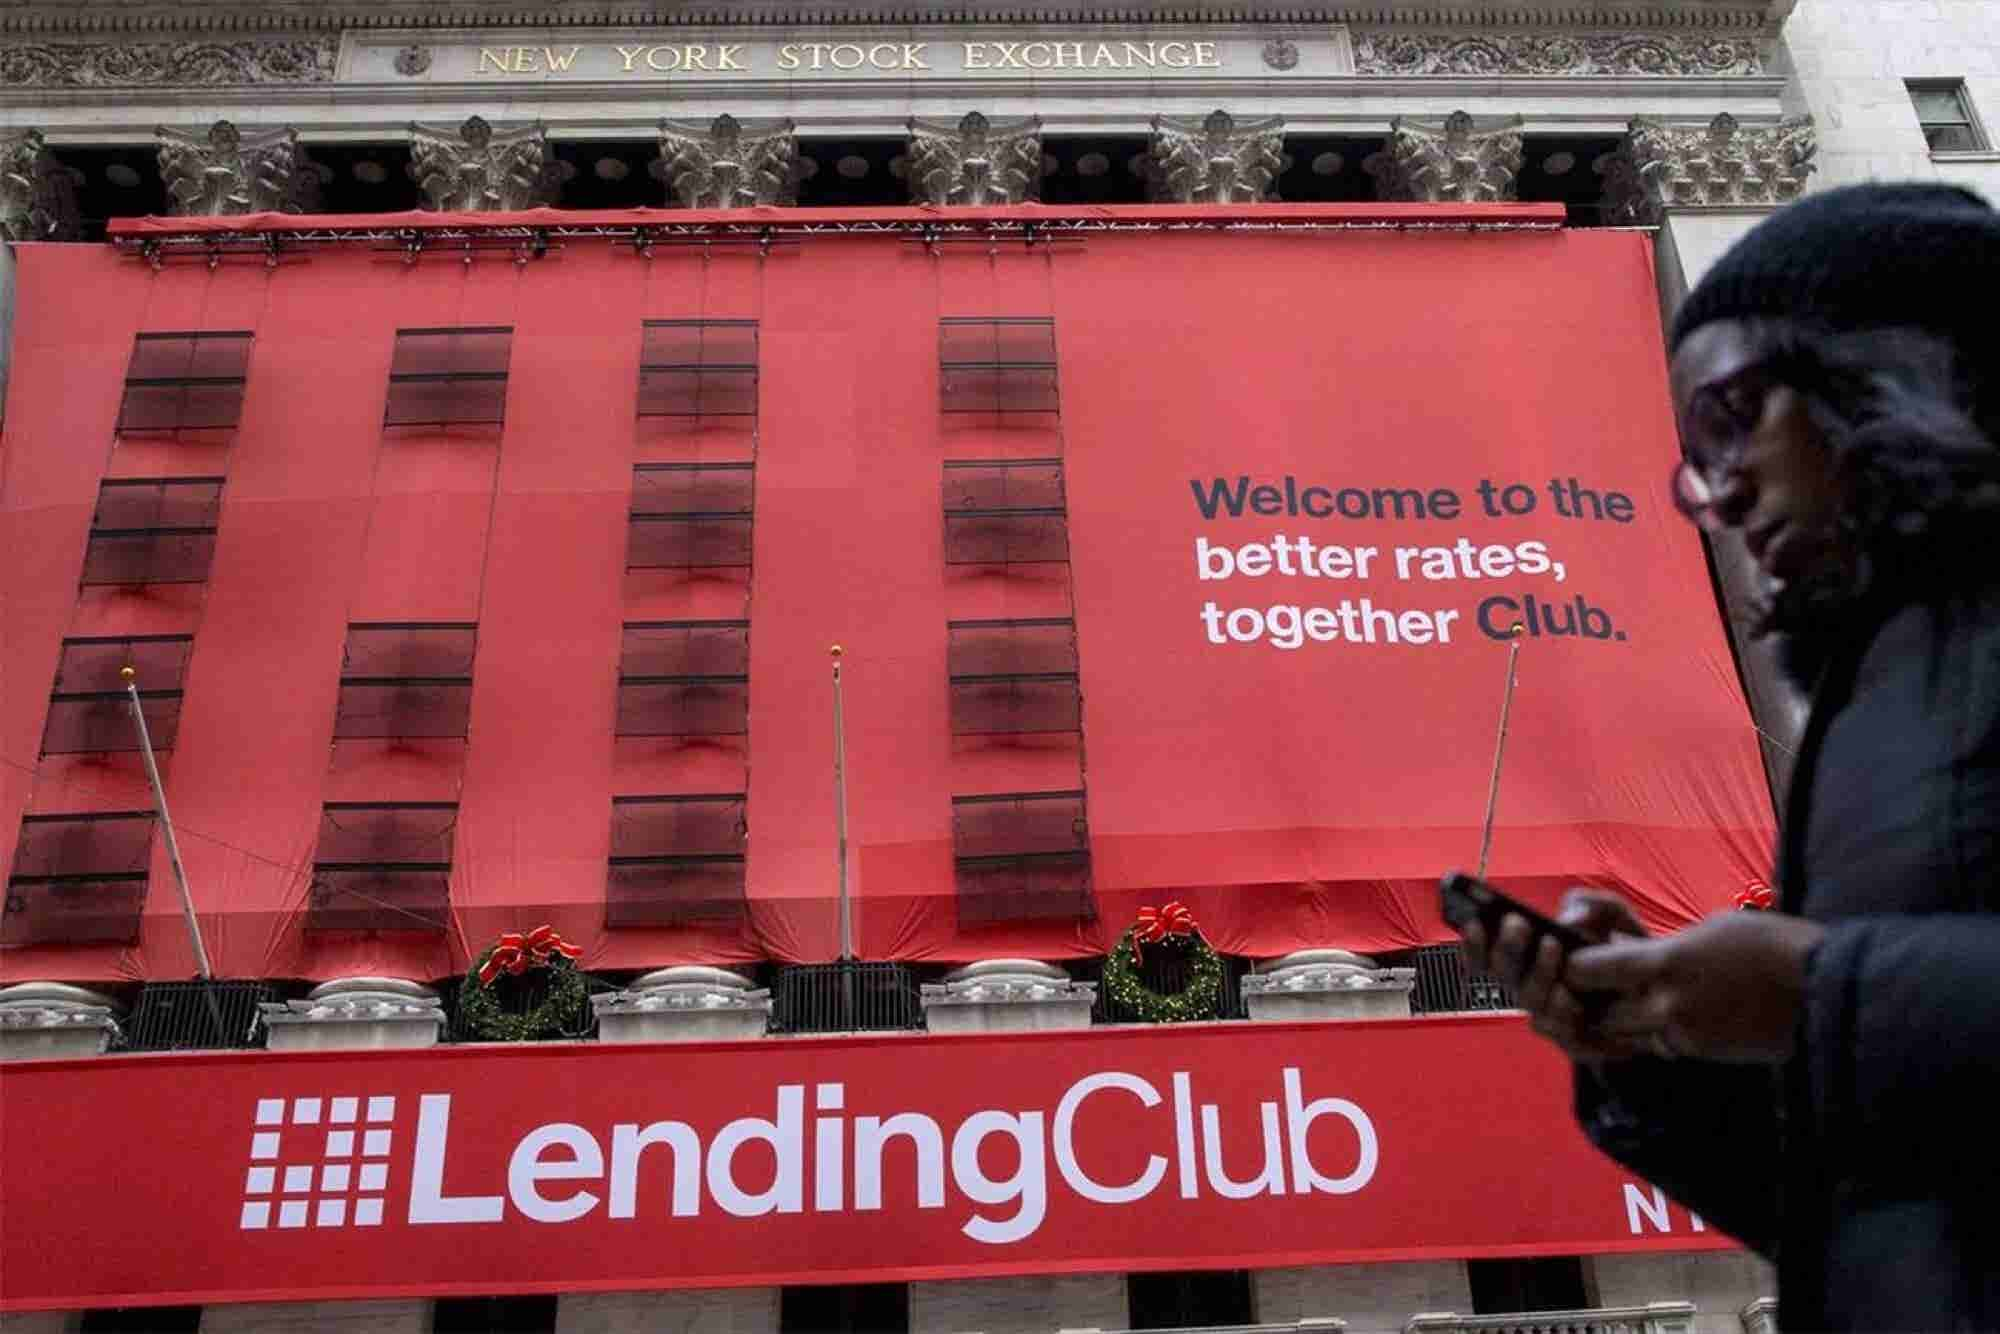 Lending Club Under Probe by U.S. Justice Dept, Receives Subpoena